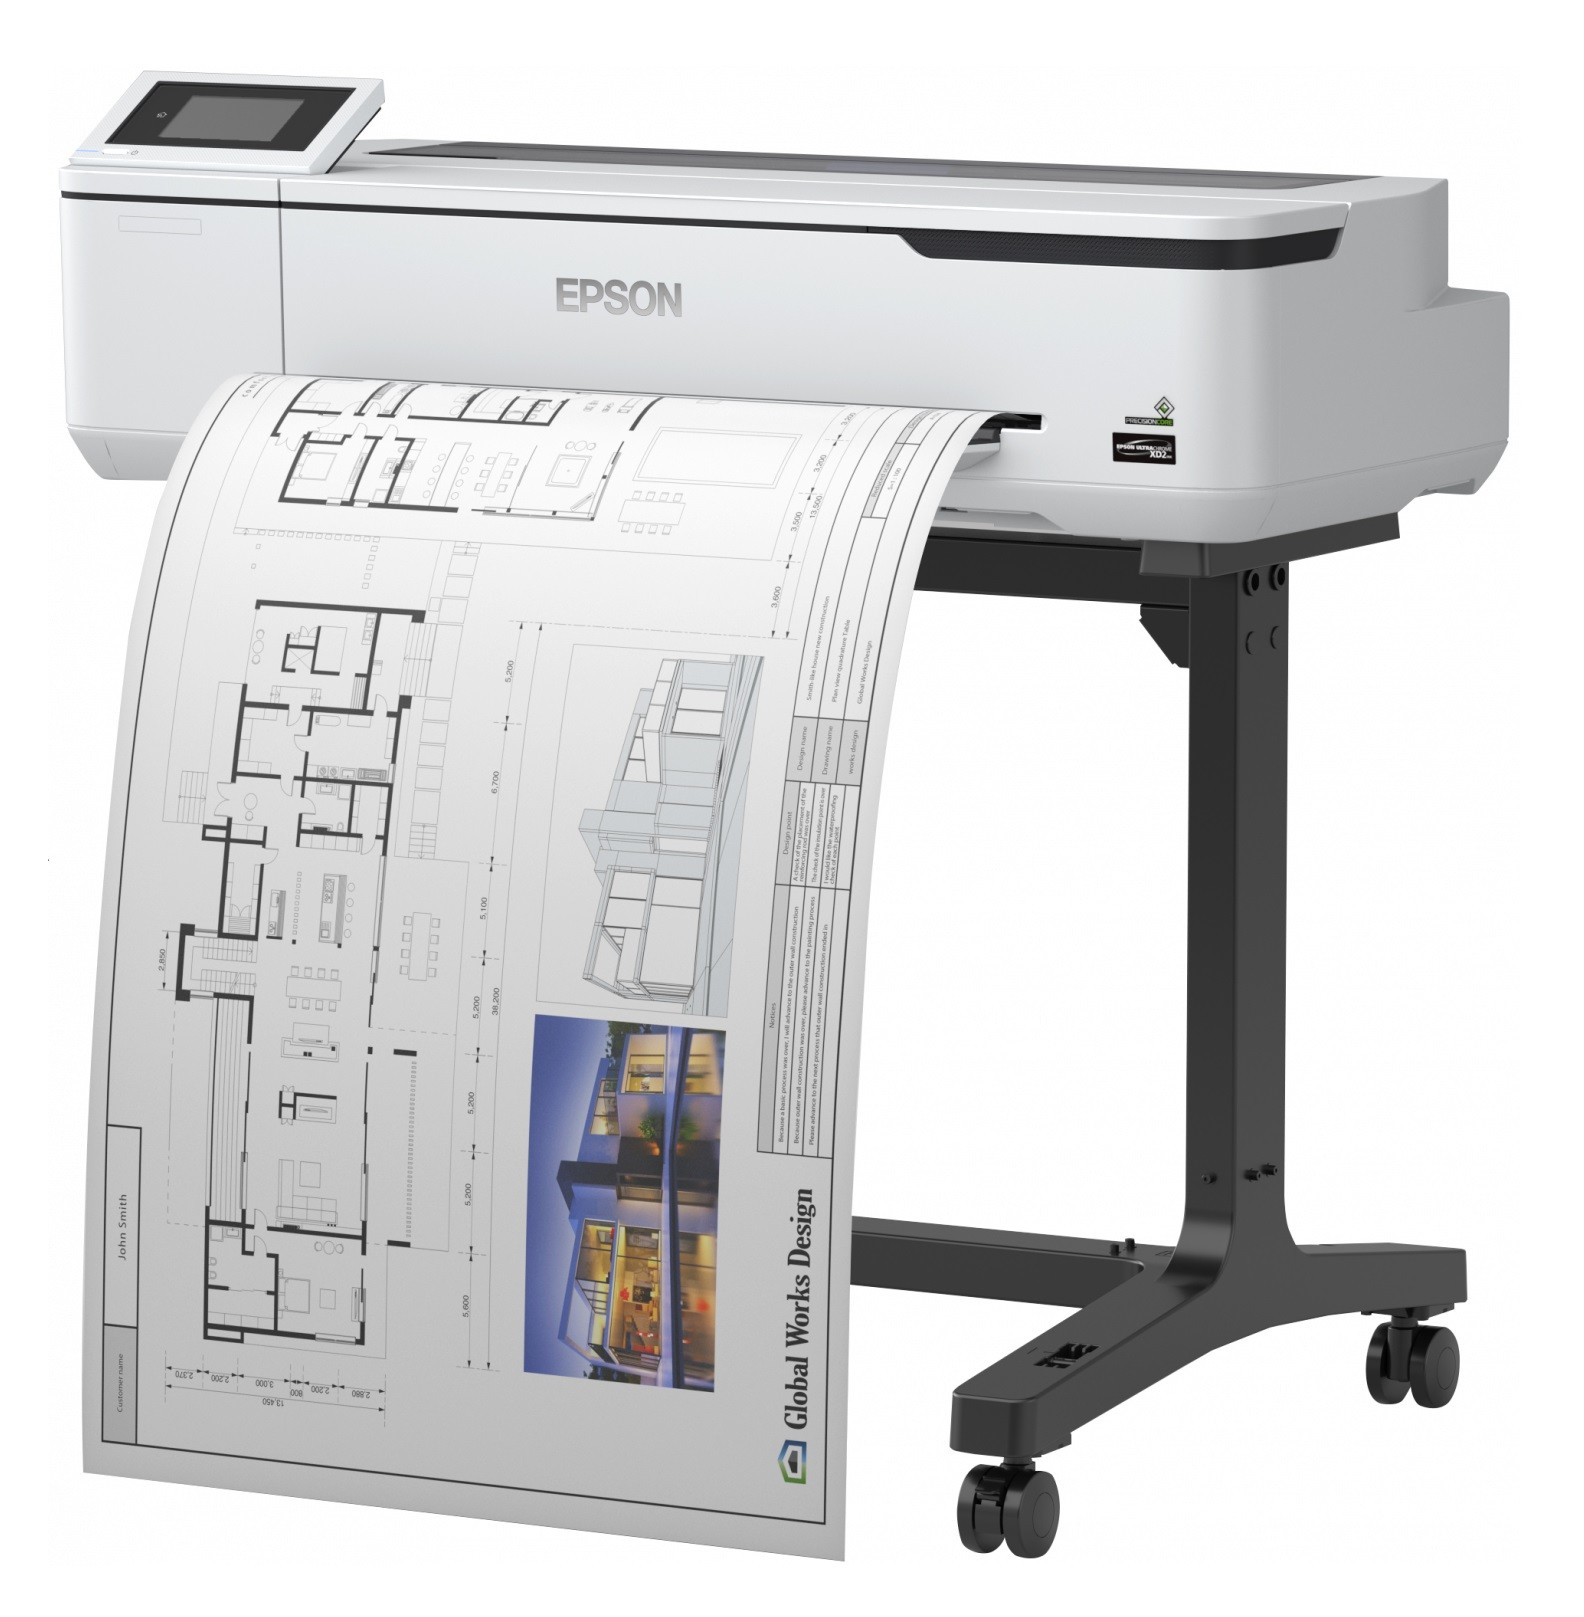 EPSON SC-T2100 with Stand